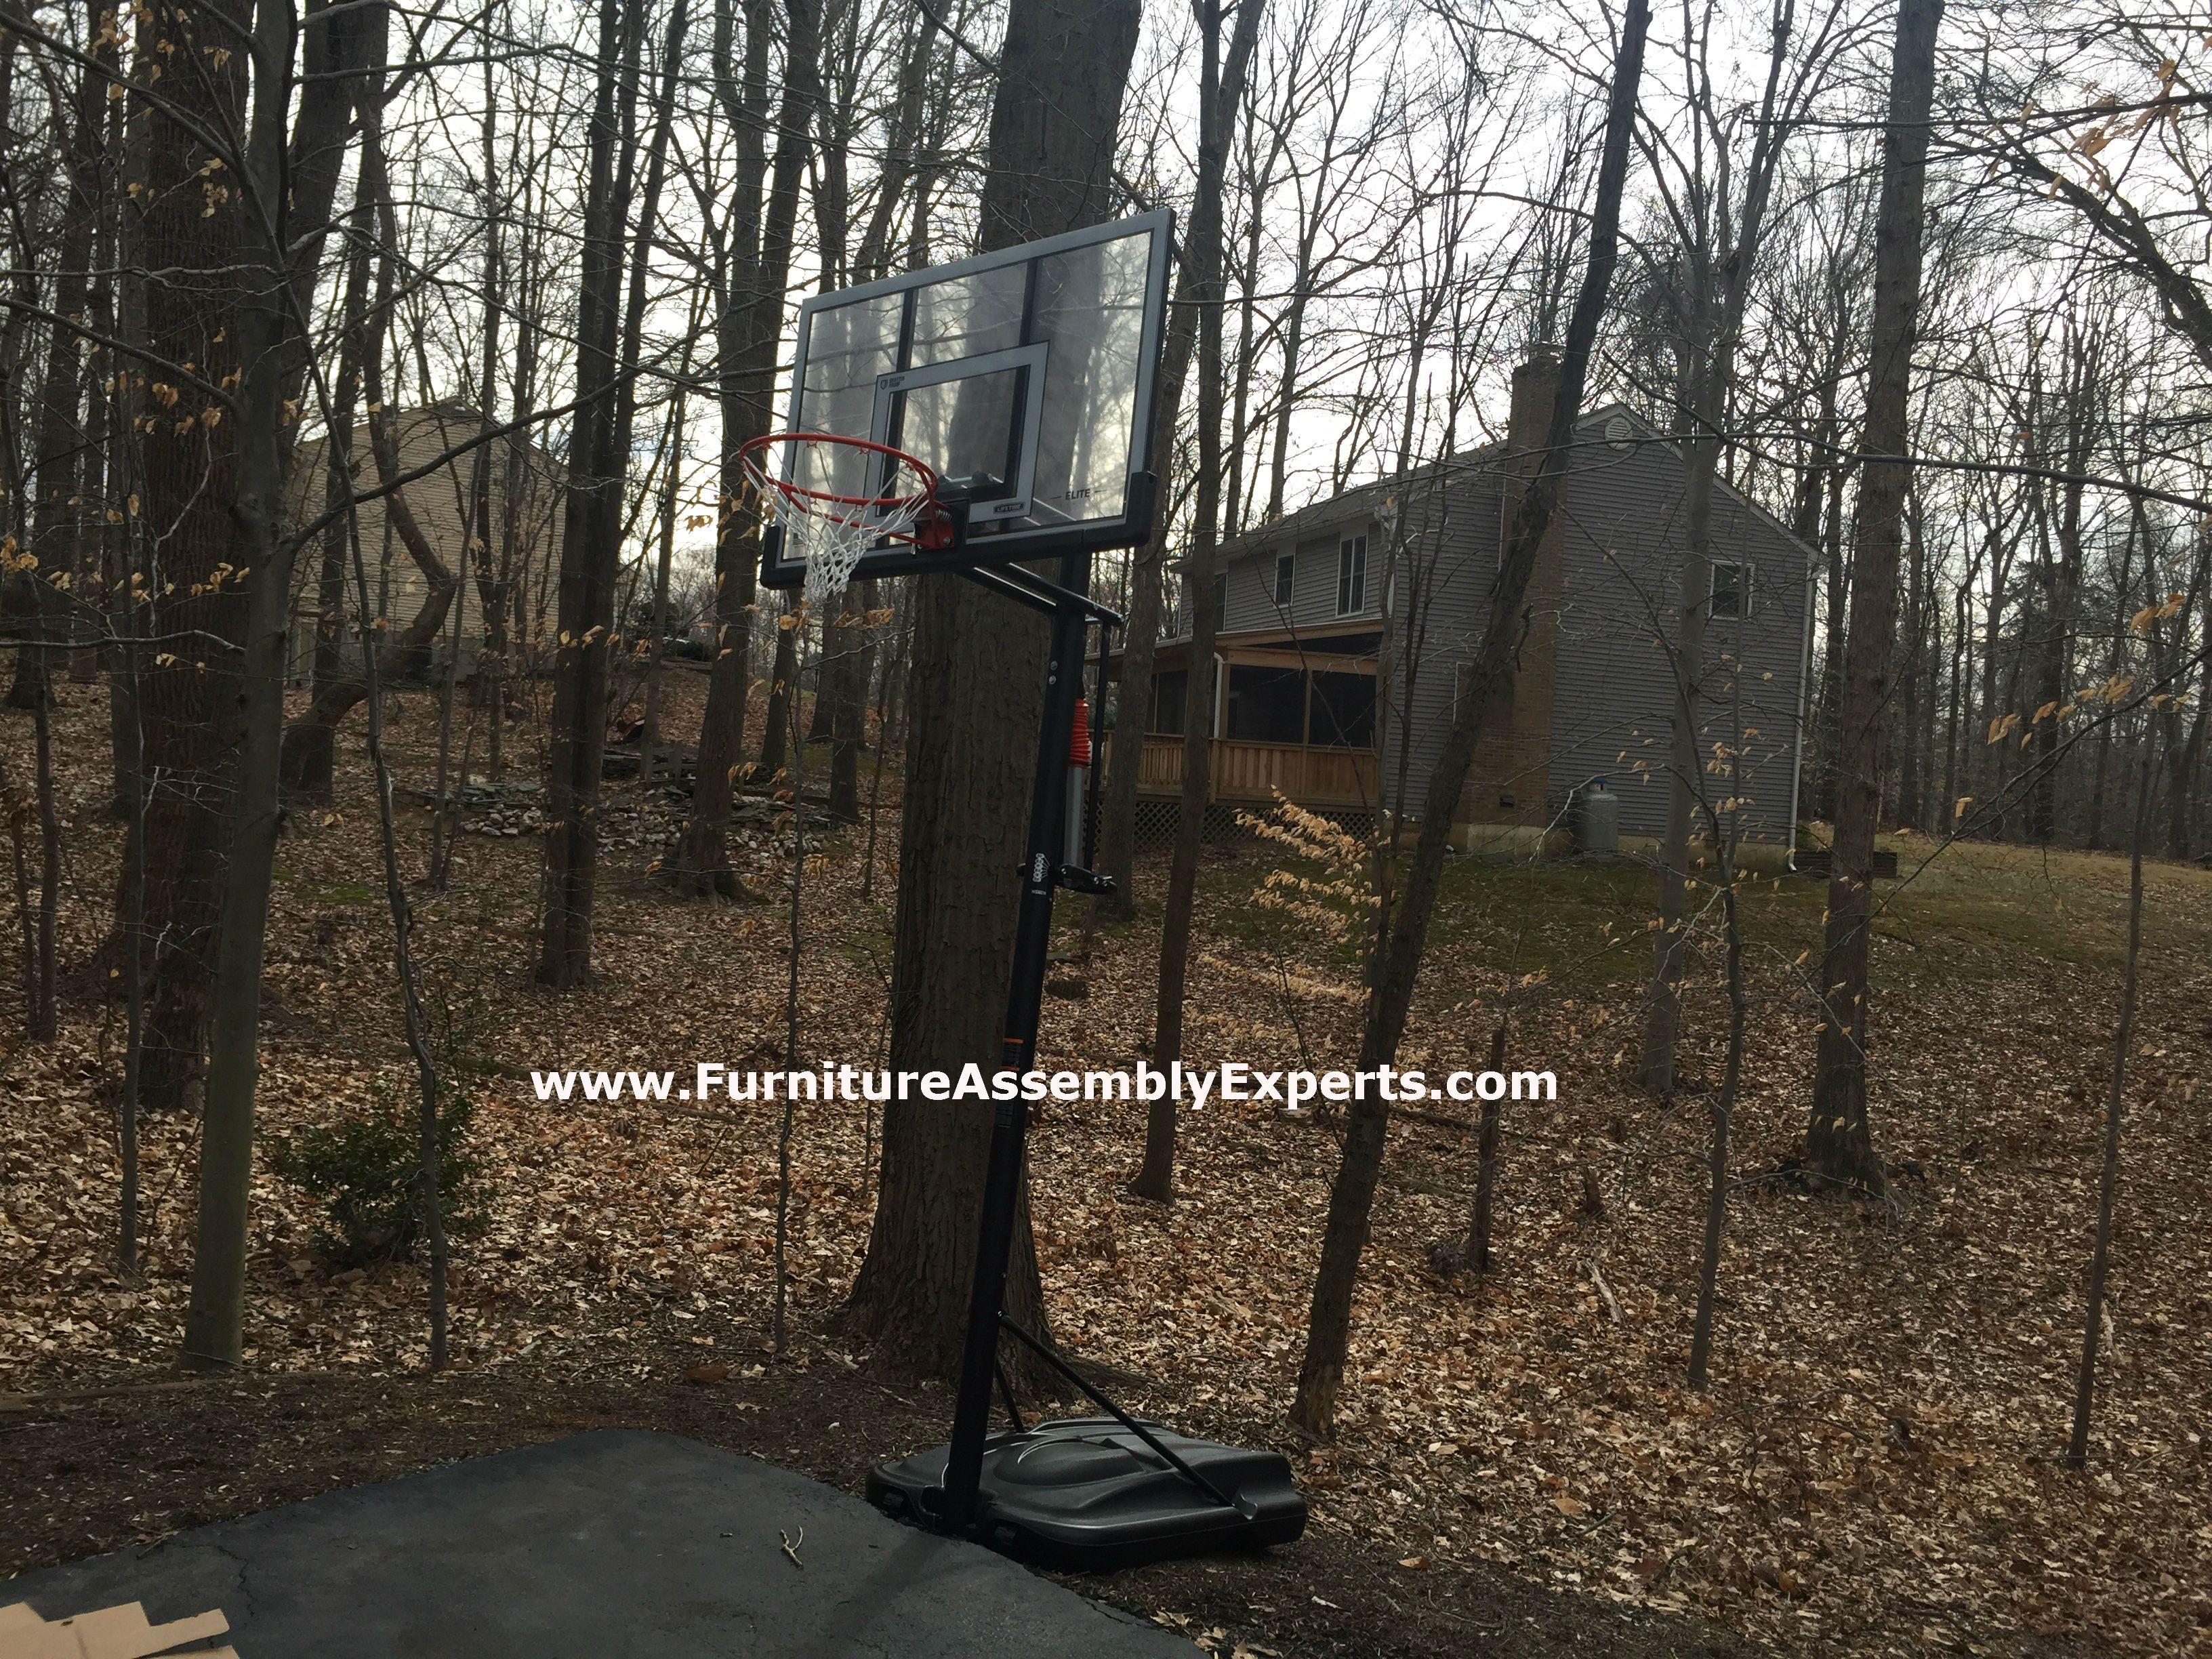 Lifetime Portable Basketball Hoop Assembled In Owing Mills Md By Furniture Assembly Experts Llc With Images Furniture Assembly